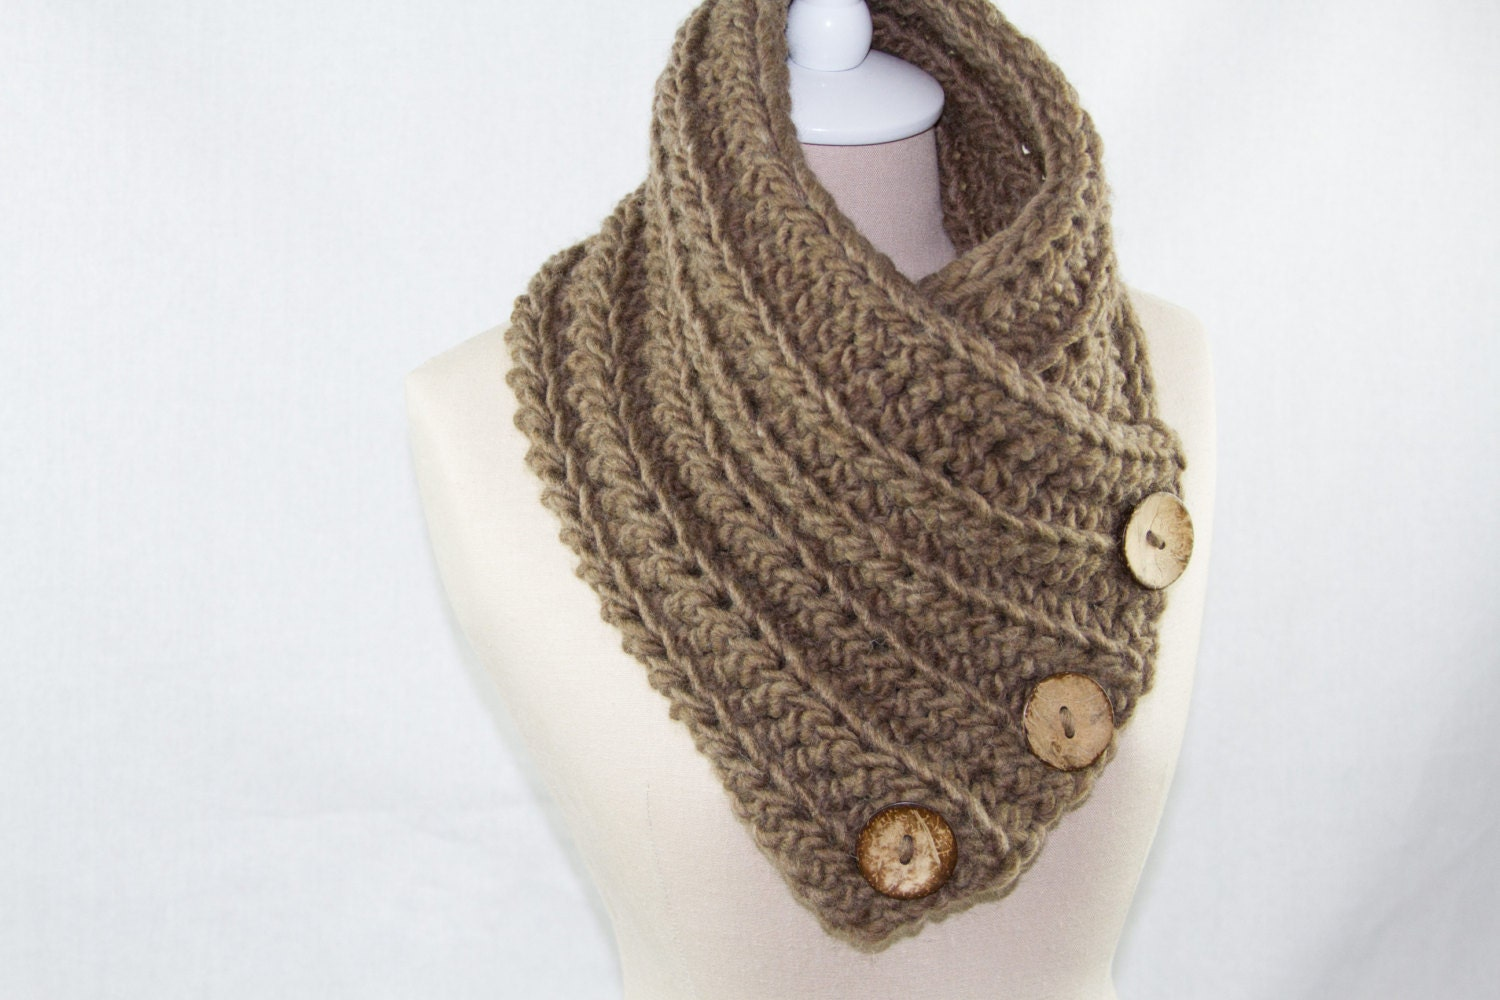 Crochet Scarf Pattern With Button : Crochet Button Scarf / Cowl / Neck Warmer by ElsieRaeBoutique